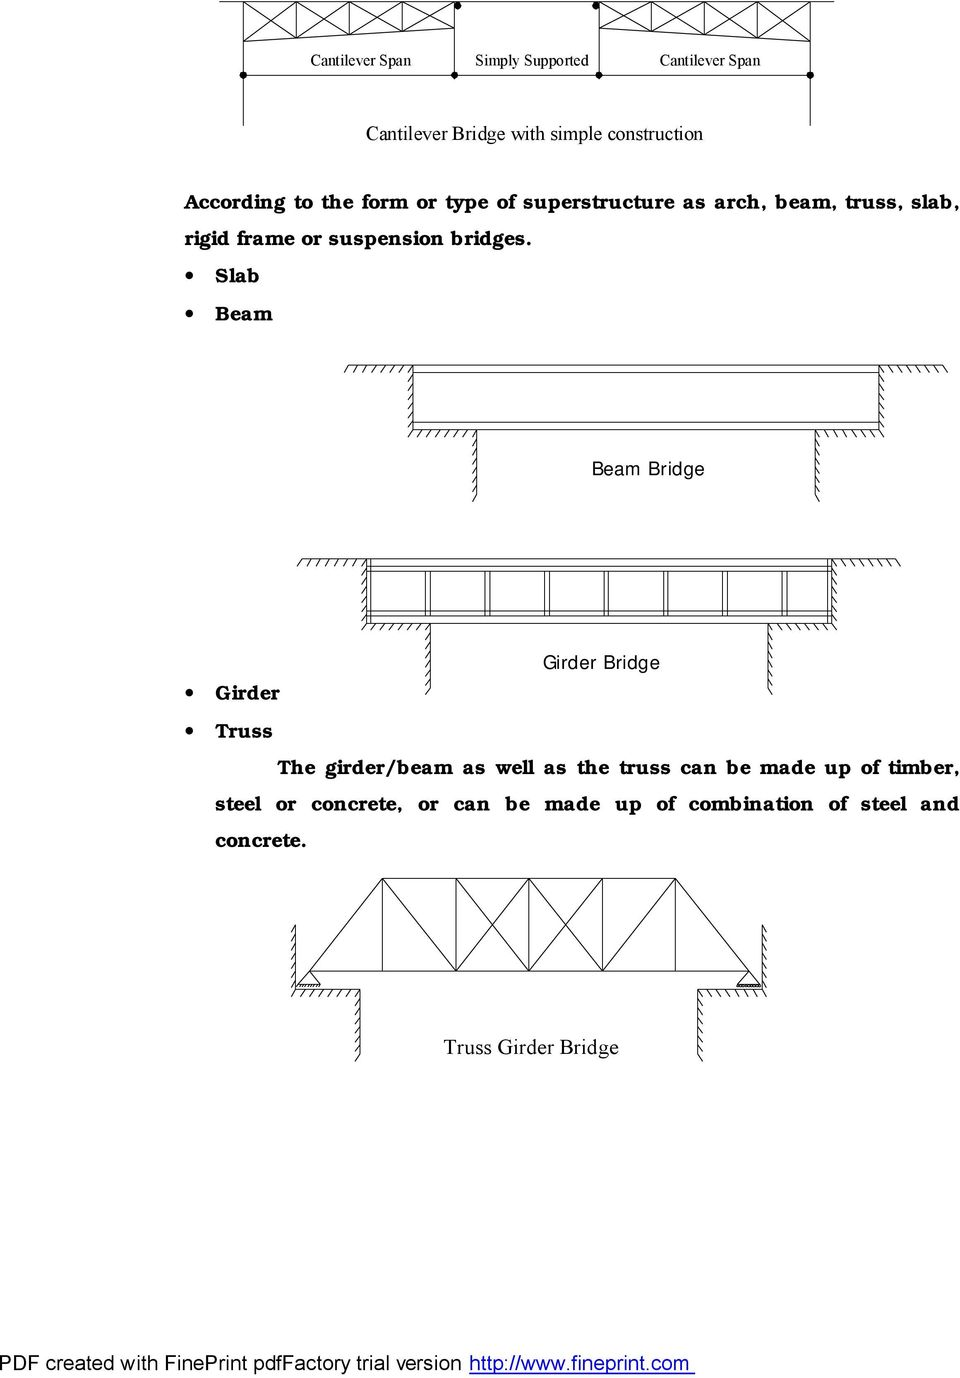 DIFFERENT TYPES OF BRIDGES AND ITS SUITABILITY: A PAPER BY - PDF